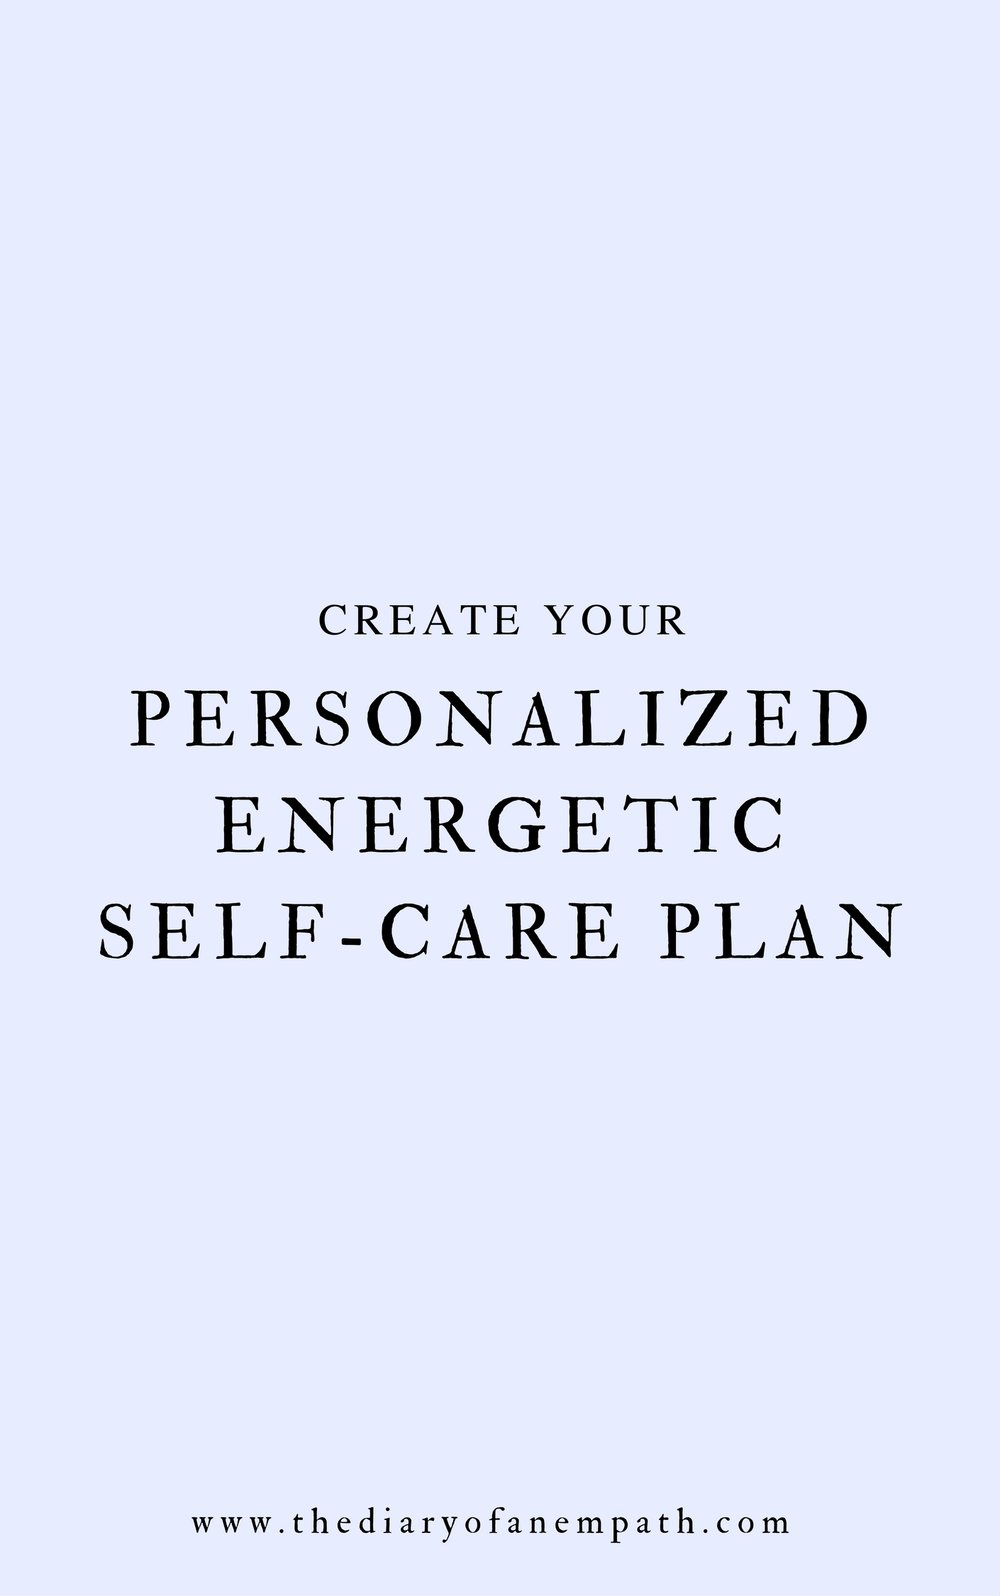 self-care plan for empaths, thediaryofanempath.com